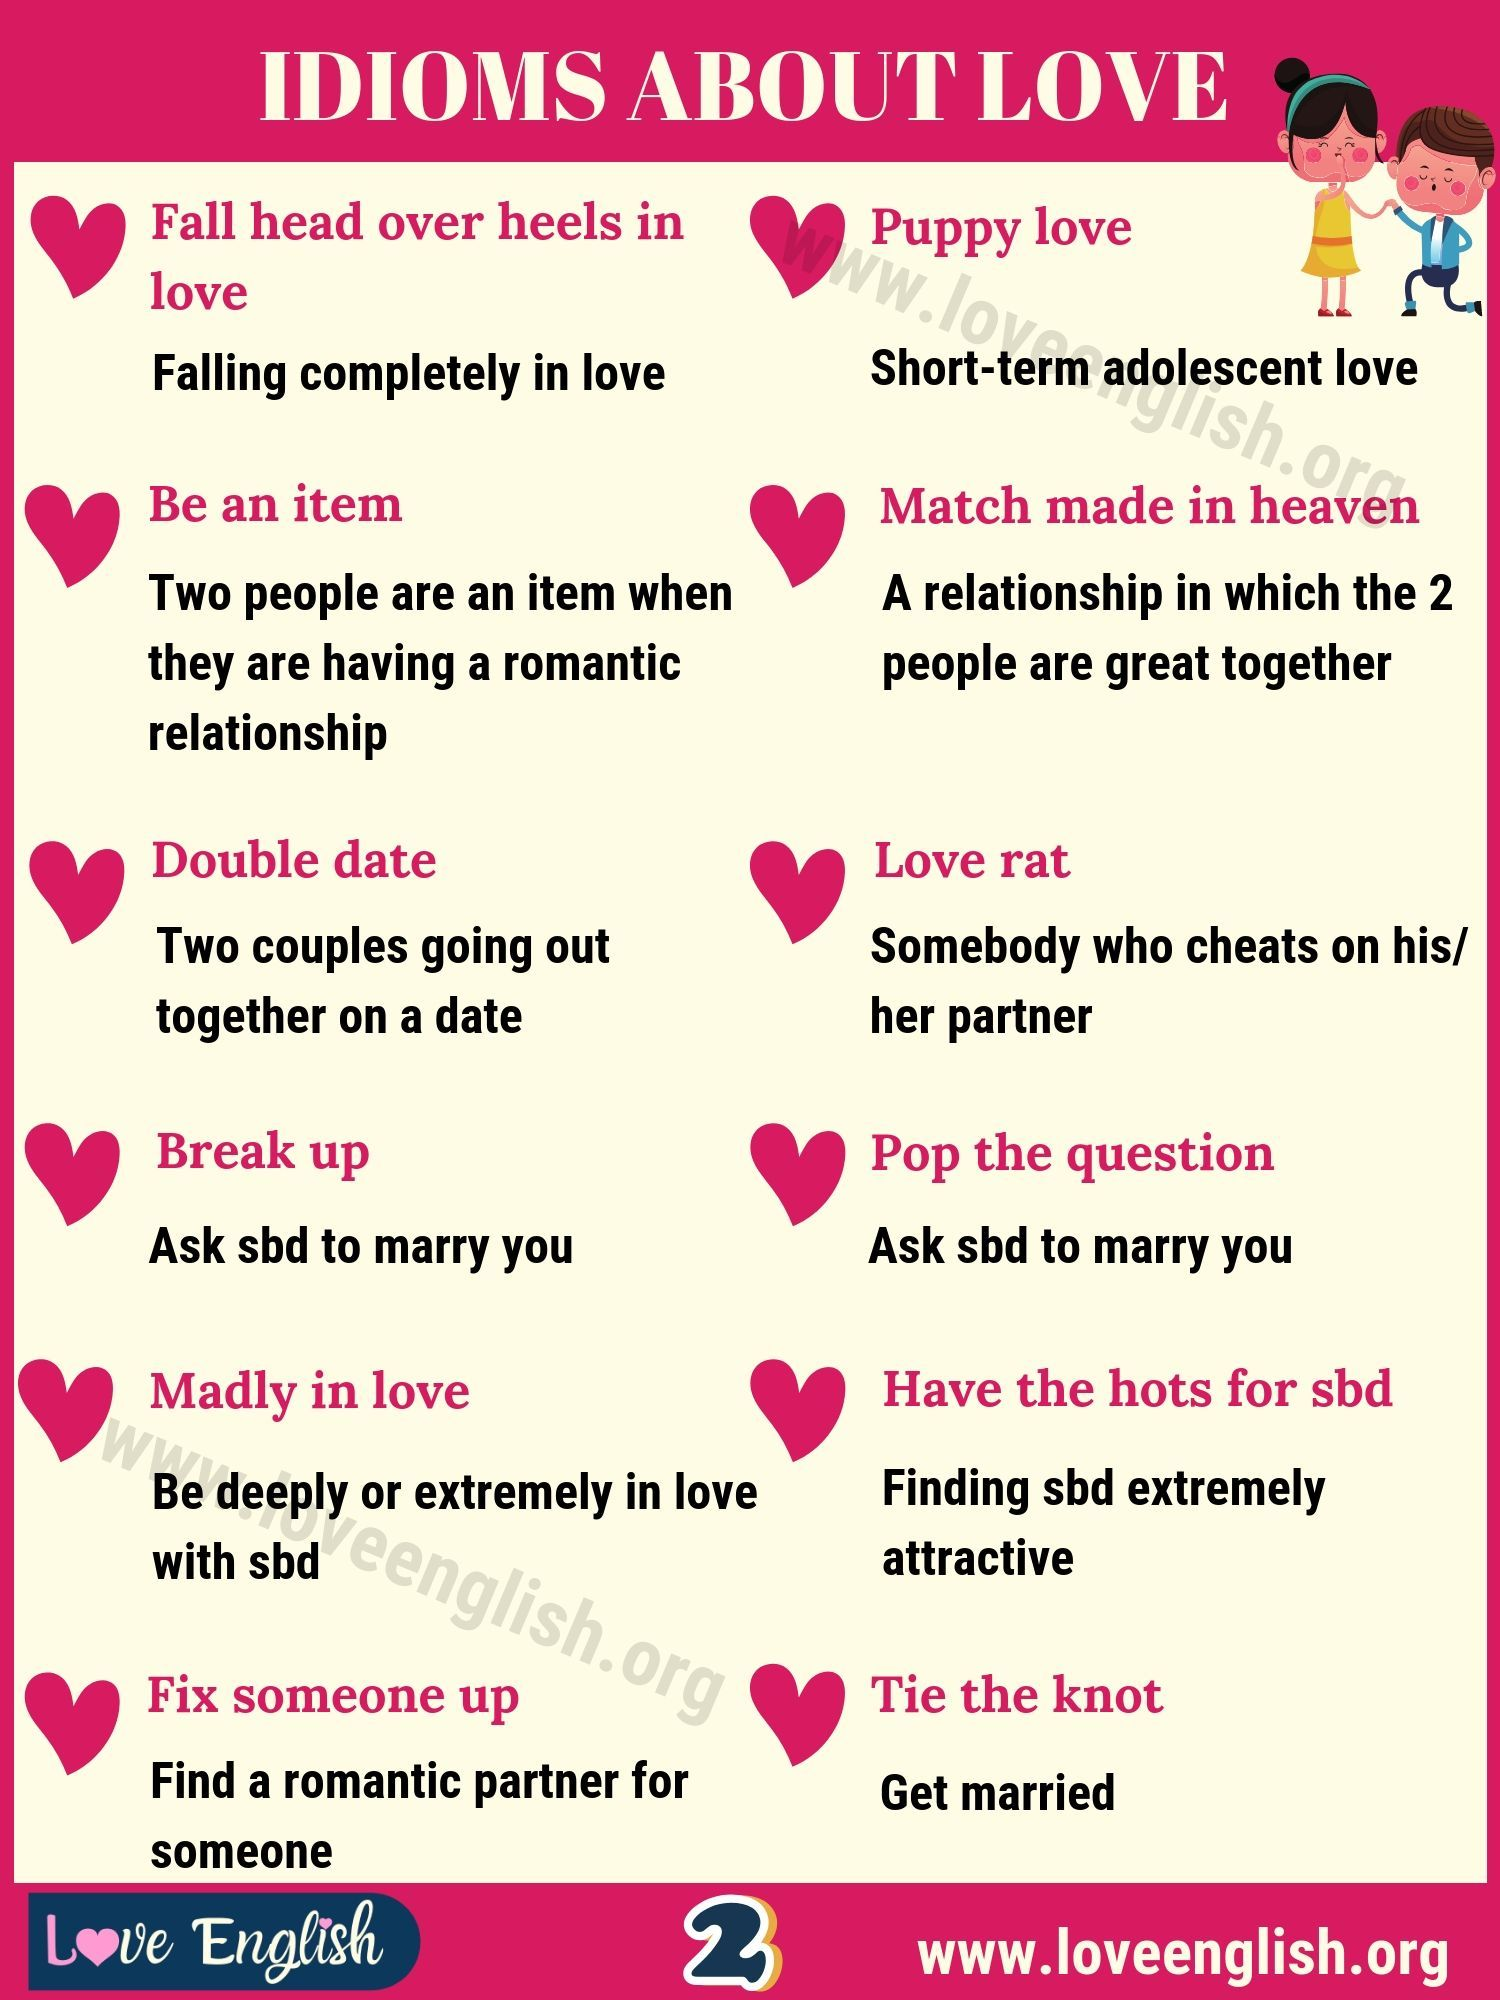 Love Idioms 32 Fantastic Idioms About Love In English Love English In 2021 Love Idioms English Idioms English Phrases Idioms